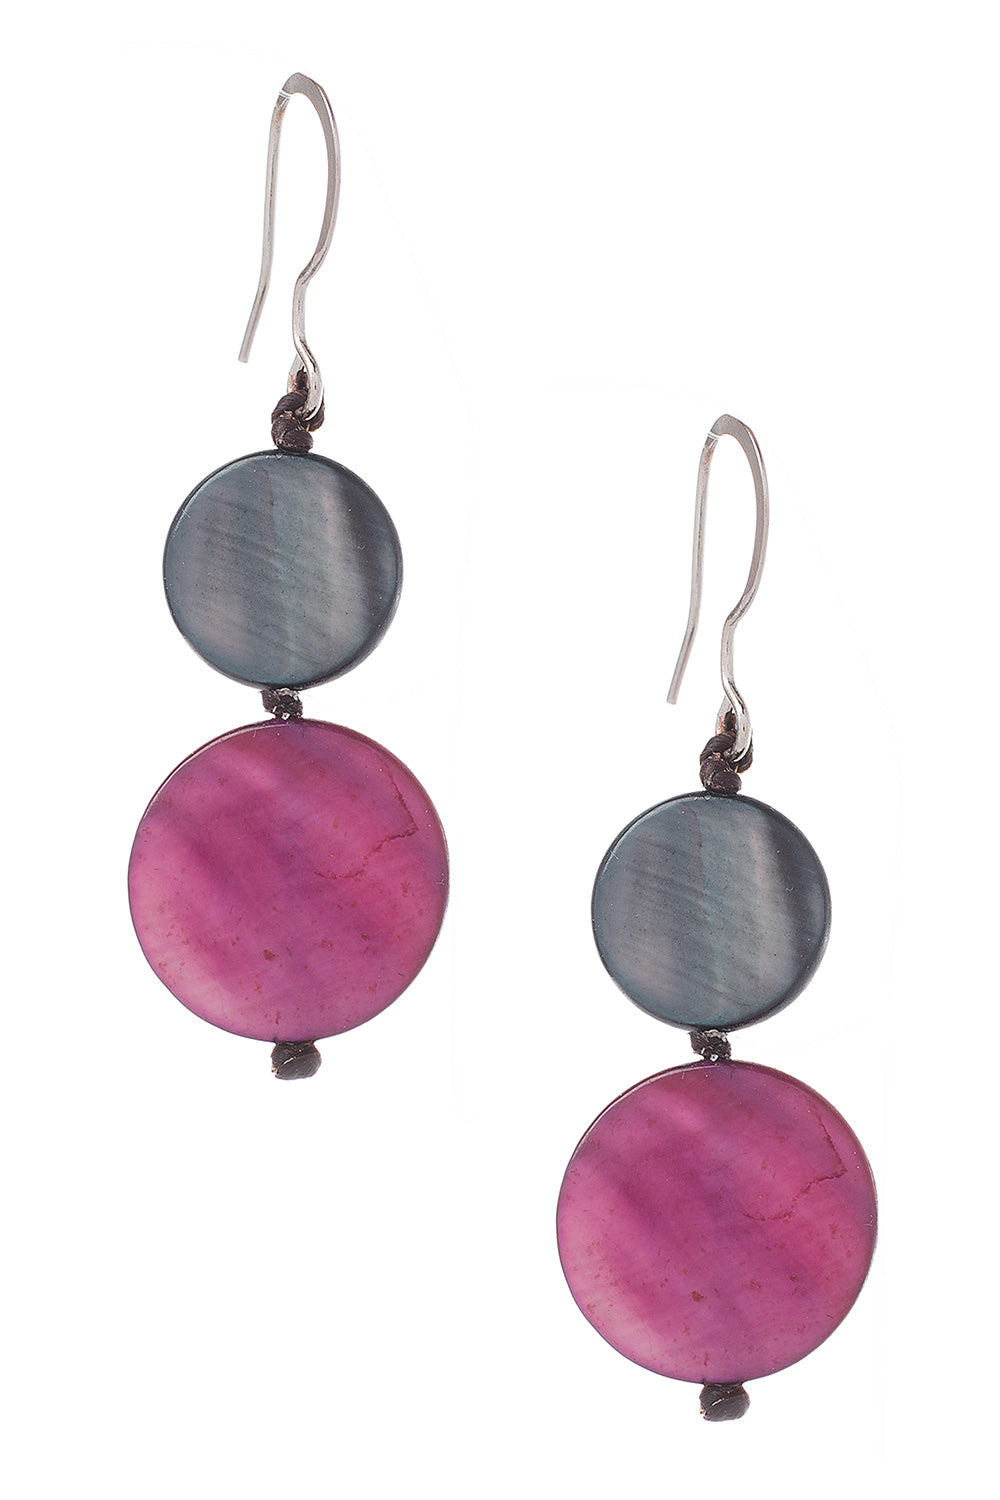 Type 2 The Connecting Factor Earrings